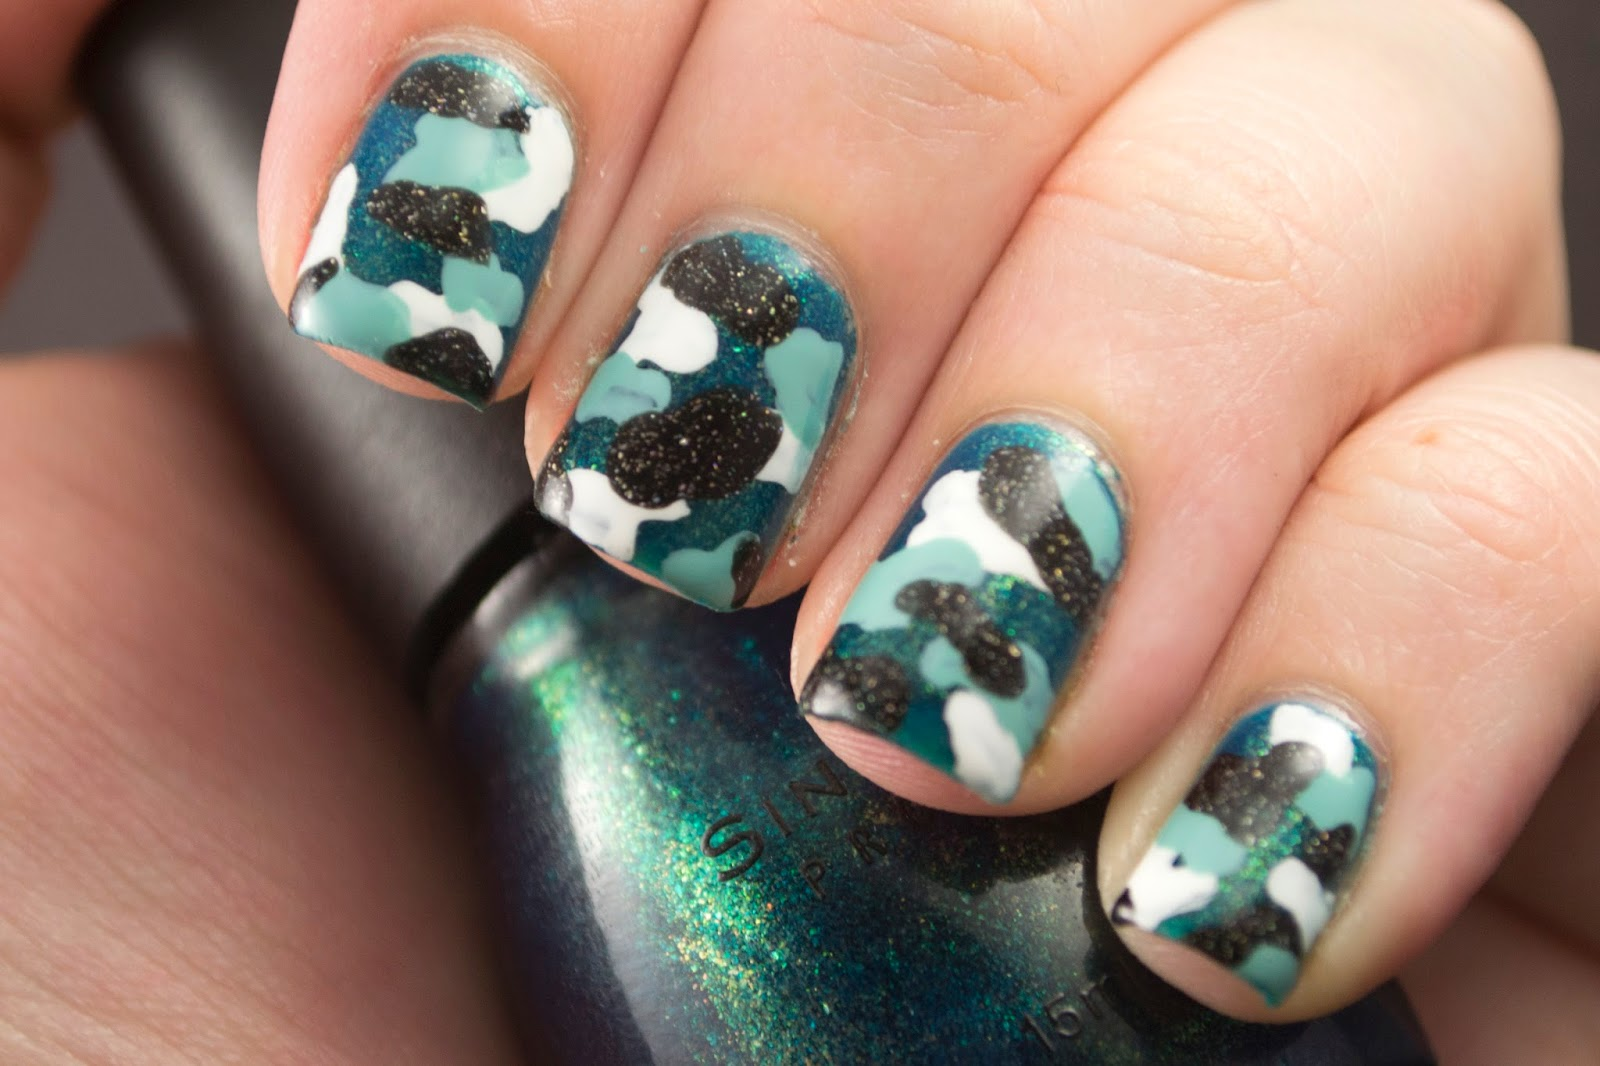 camouflage, nails, nail polish, nail art, polish, blue, turquoise, black, white, nail art a go go, hey darling polish